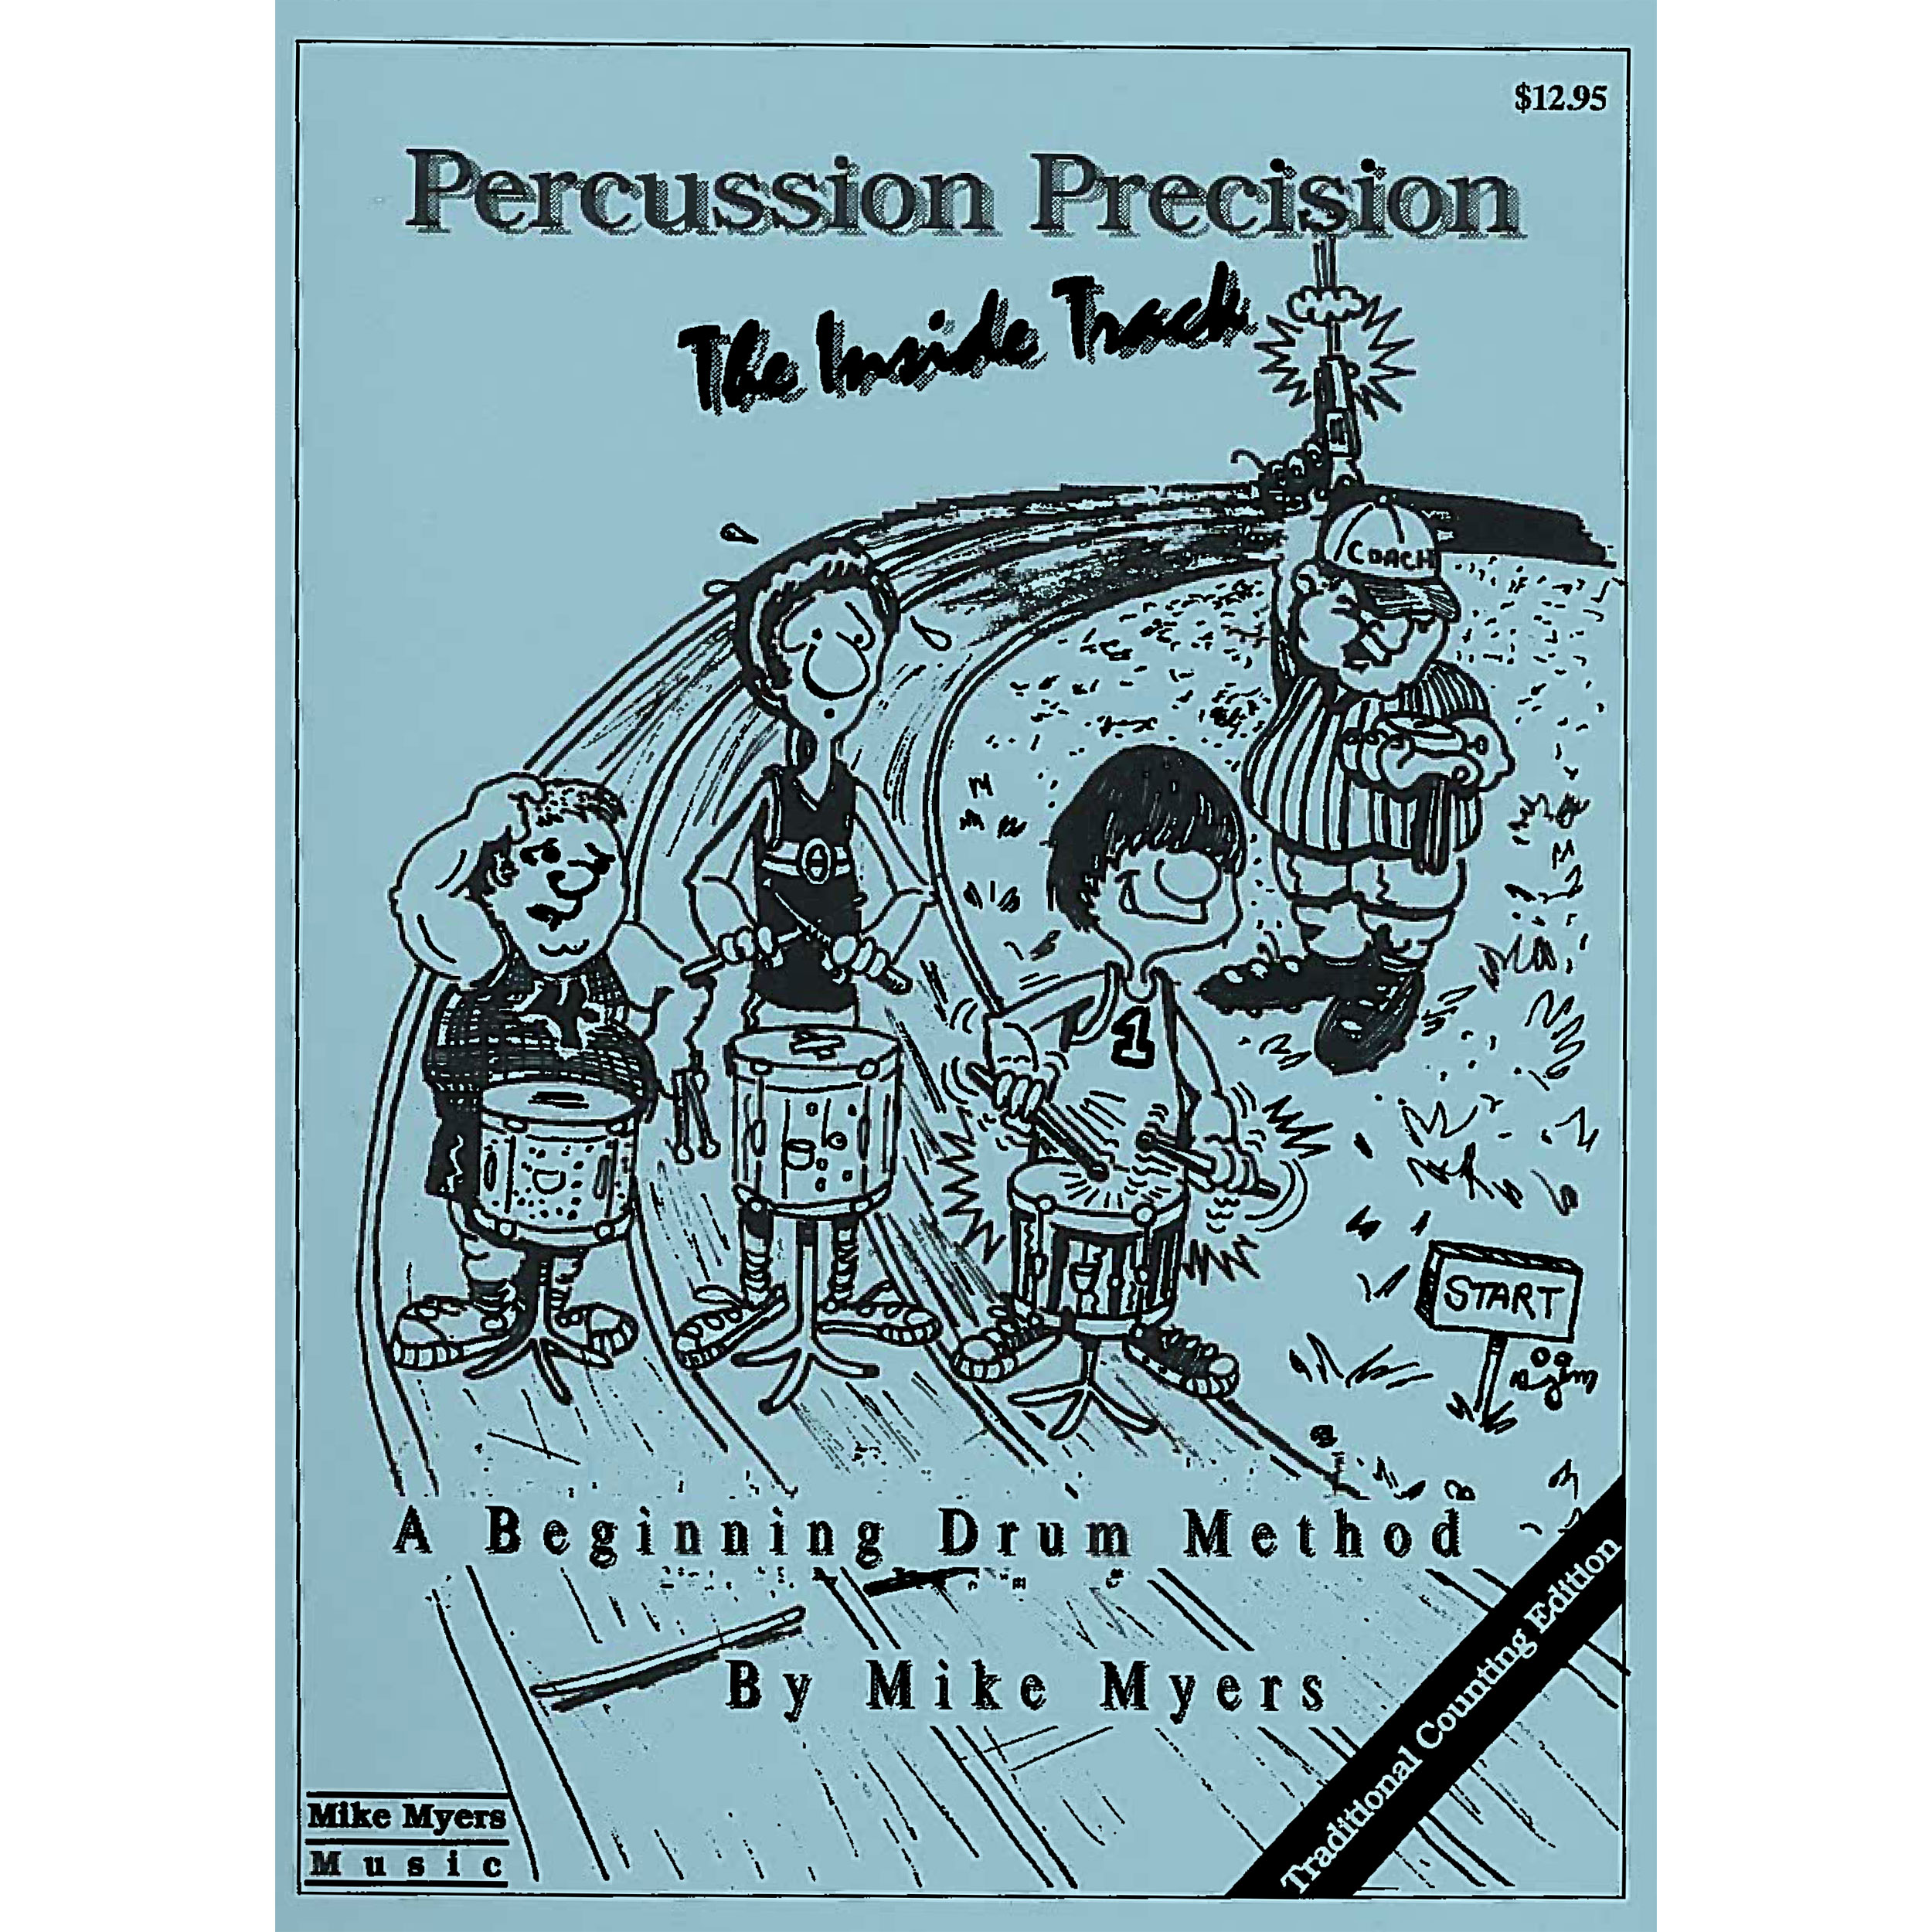 Percussion Precision: The Inside Track by Mike Myers (Traditional Counting)